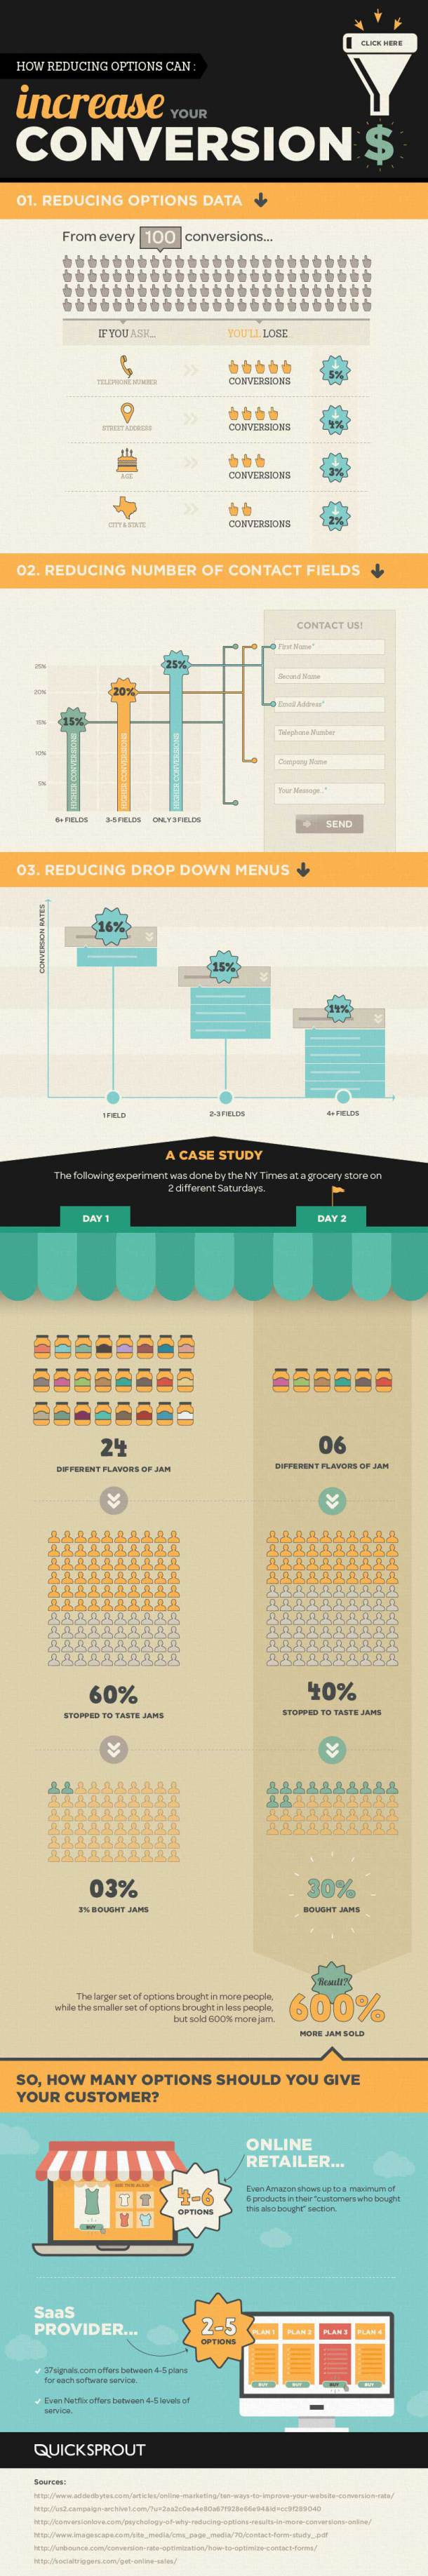 Reduce Options to Increase Conversions [INFOGRAPHIC] #Options #Conversions